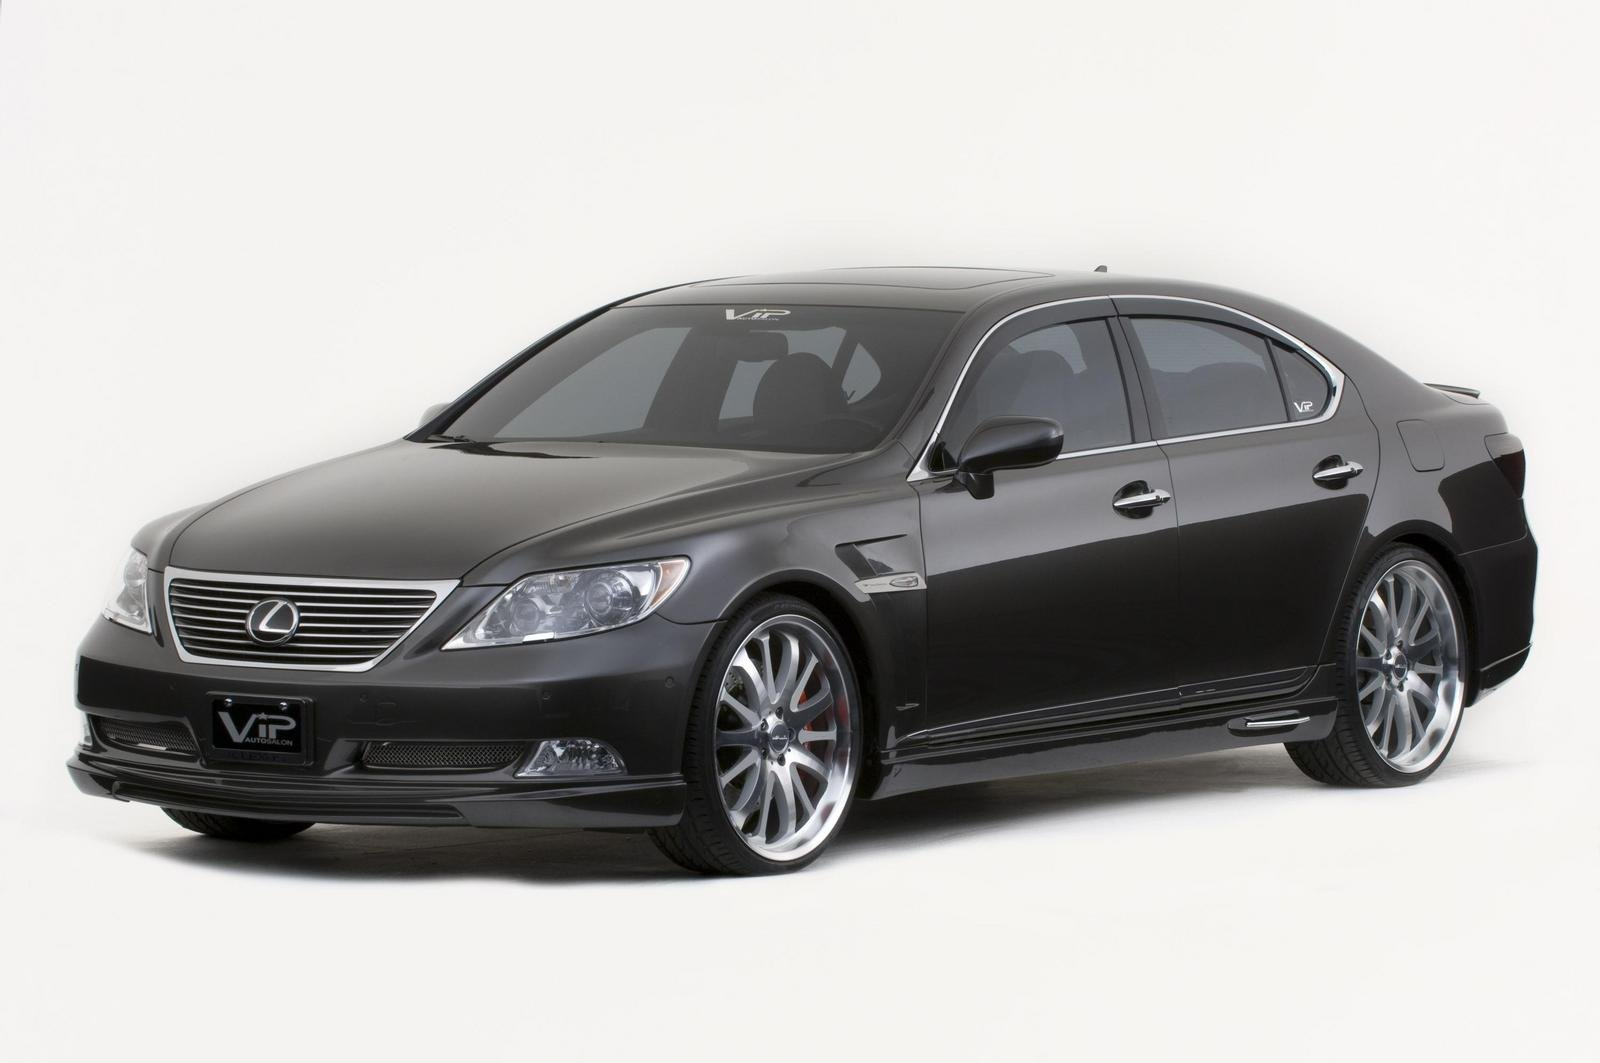 2007 lexus ls 460 by vip auto salon review gallery top speed. Black Bedroom Furniture Sets. Home Design Ideas